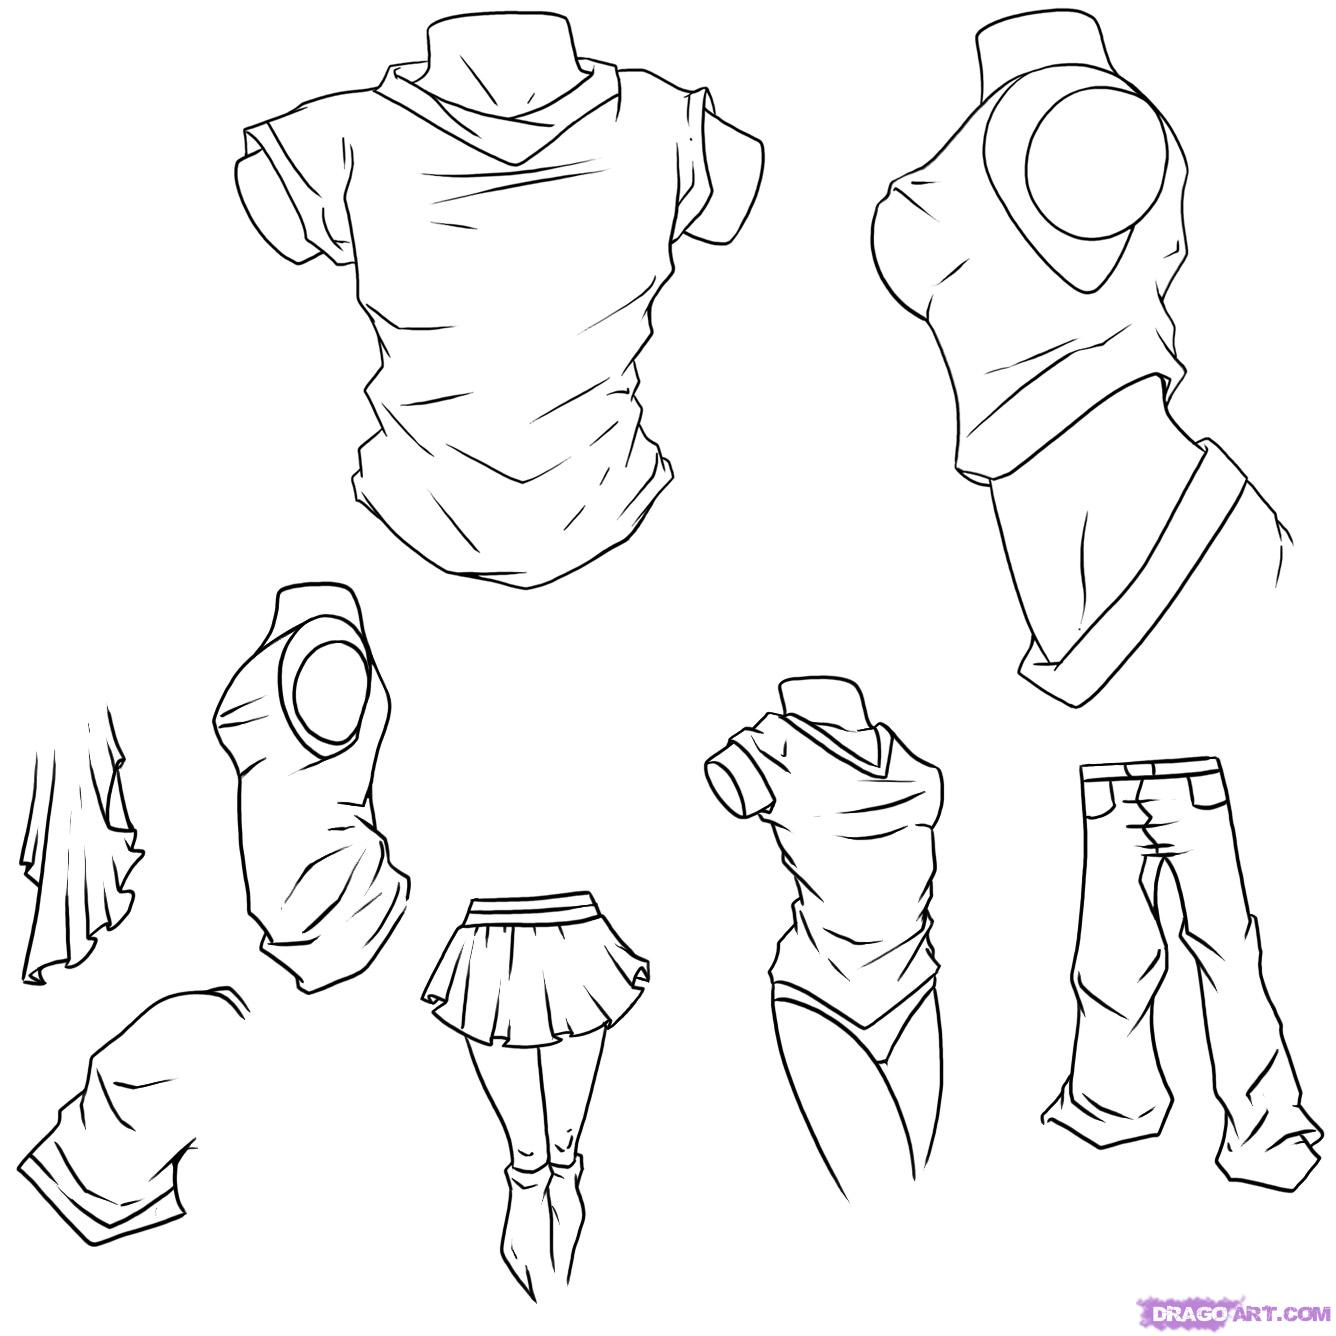 1336x1336 How to Draw Fantasy Anime How to Draw Anime Clothes, Step by